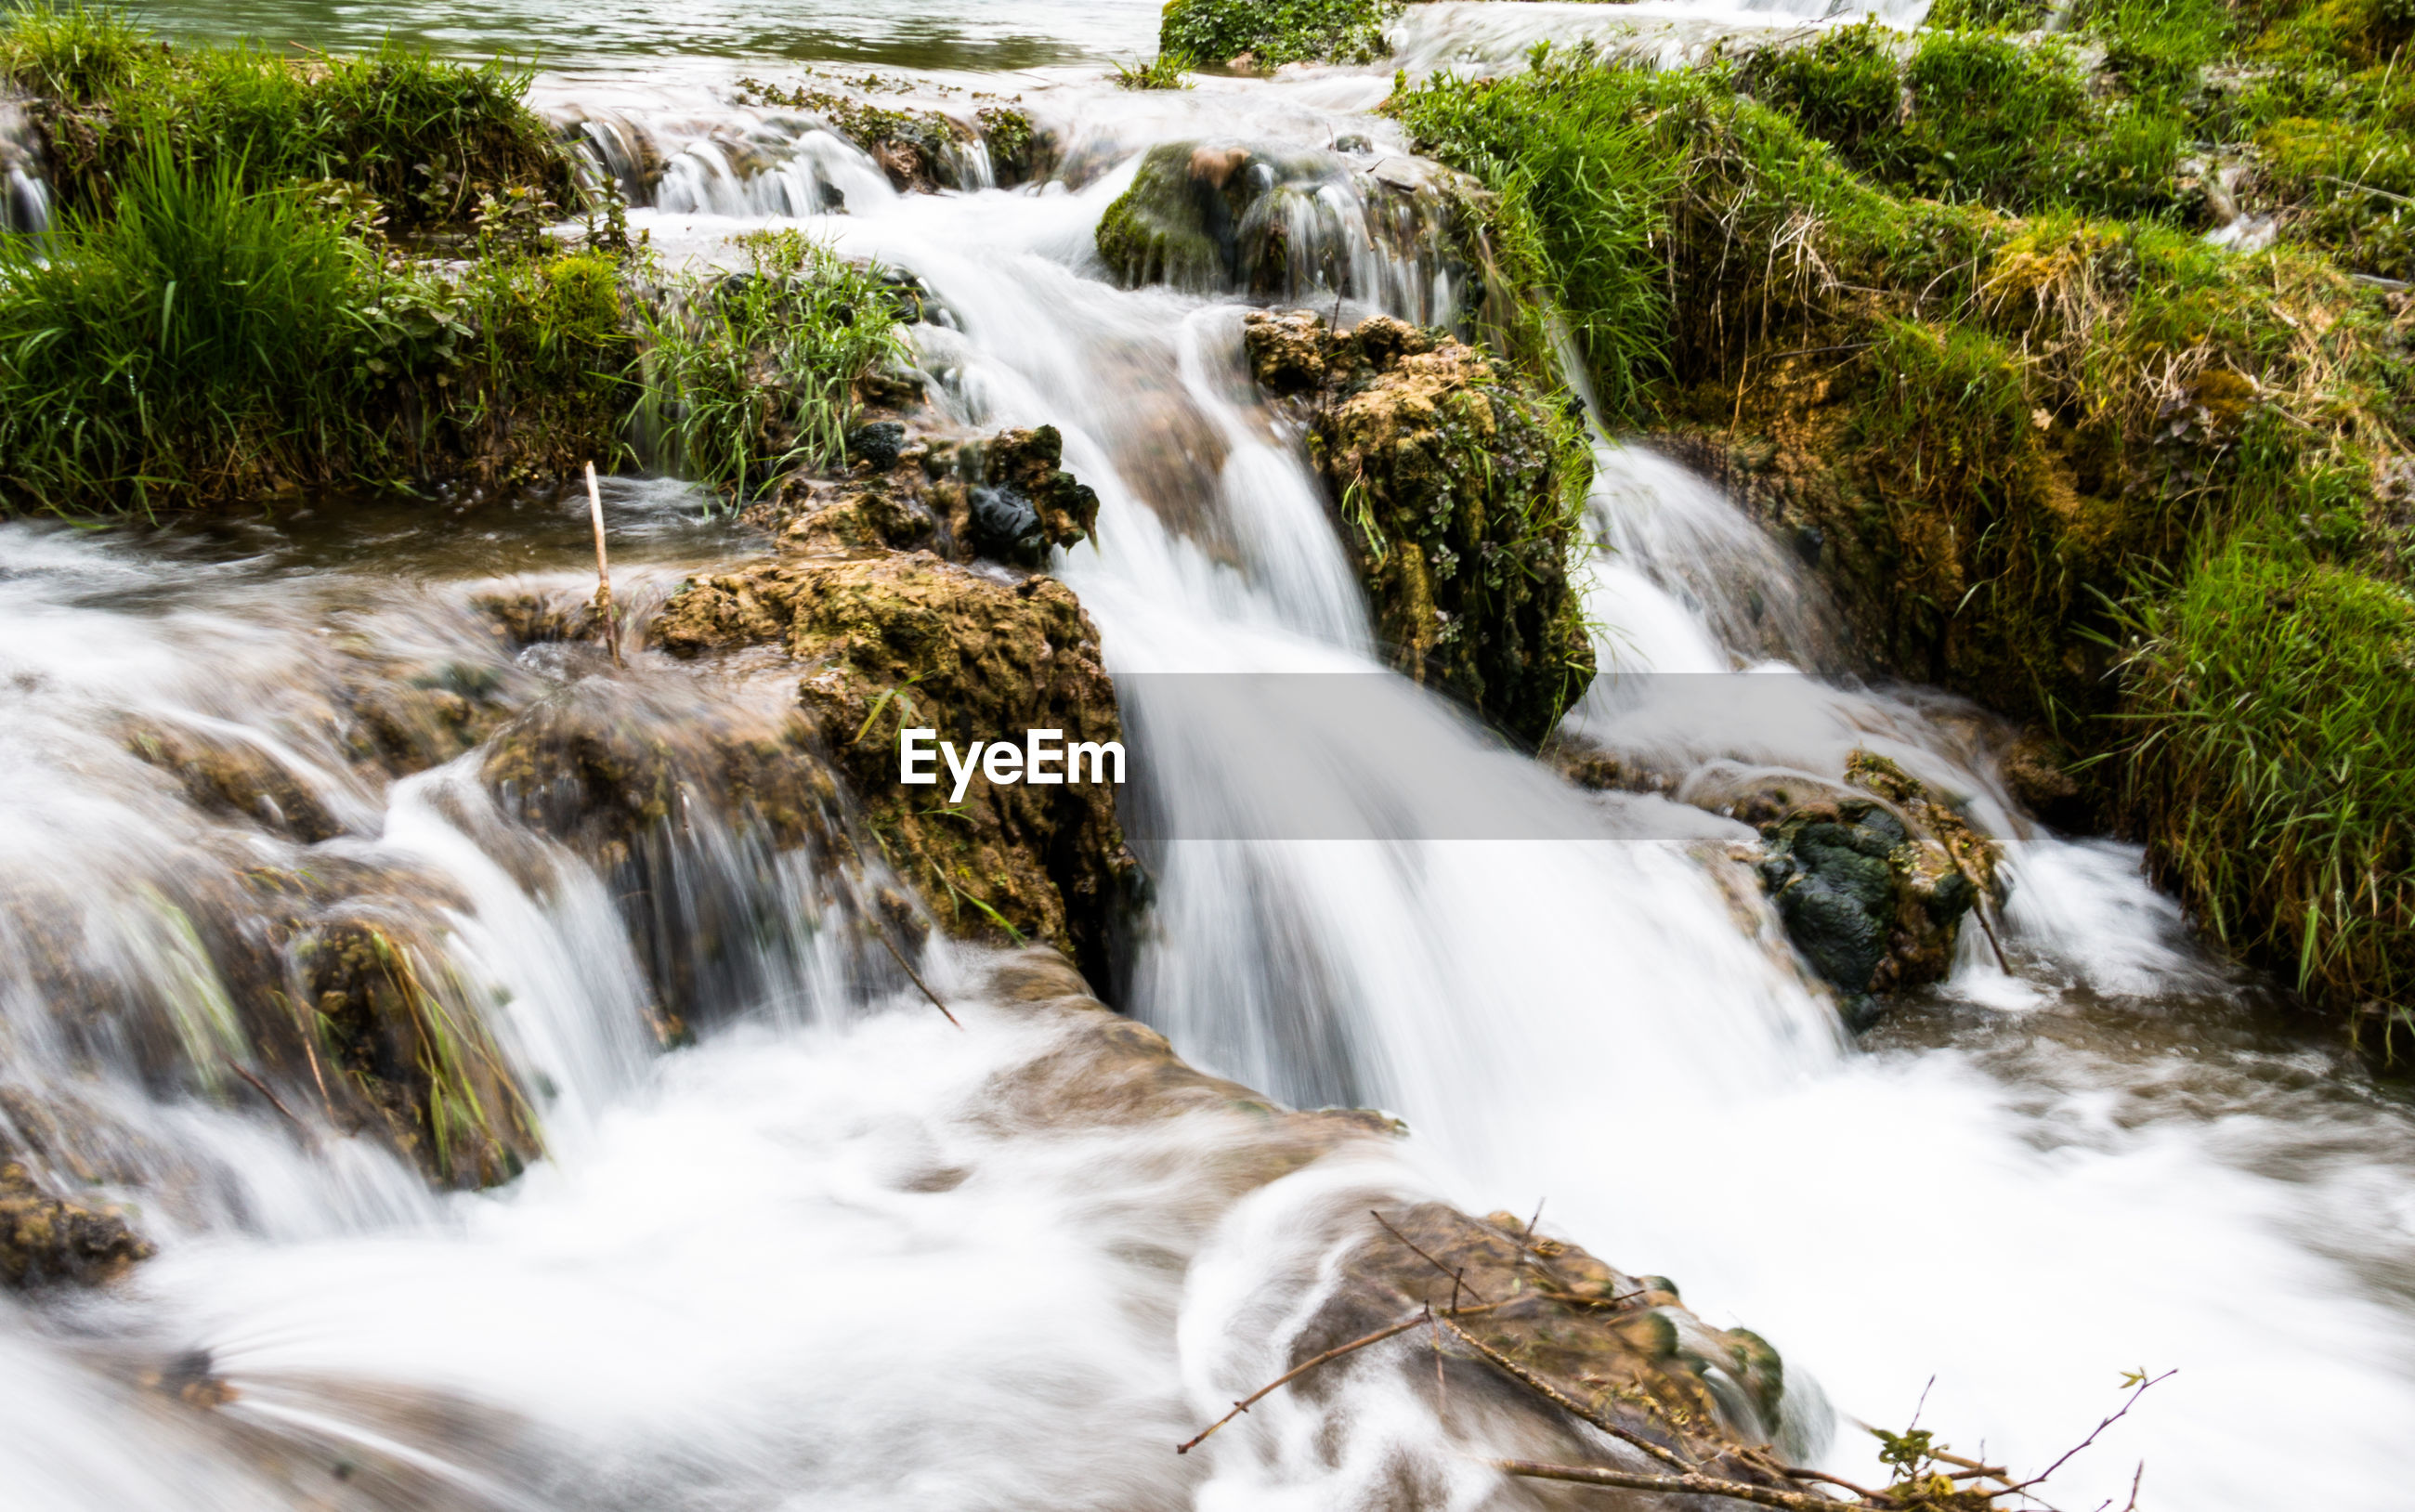 waterfall, long exposure, scenics - nature, flowing water, beauty in nature, water, motion, blurred motion, forest, rock, no people, plant, flowing, rock - object, environment, solid, nature, land, tree, outdoors, power in nature, stream - flowing water, falling water, rainforest